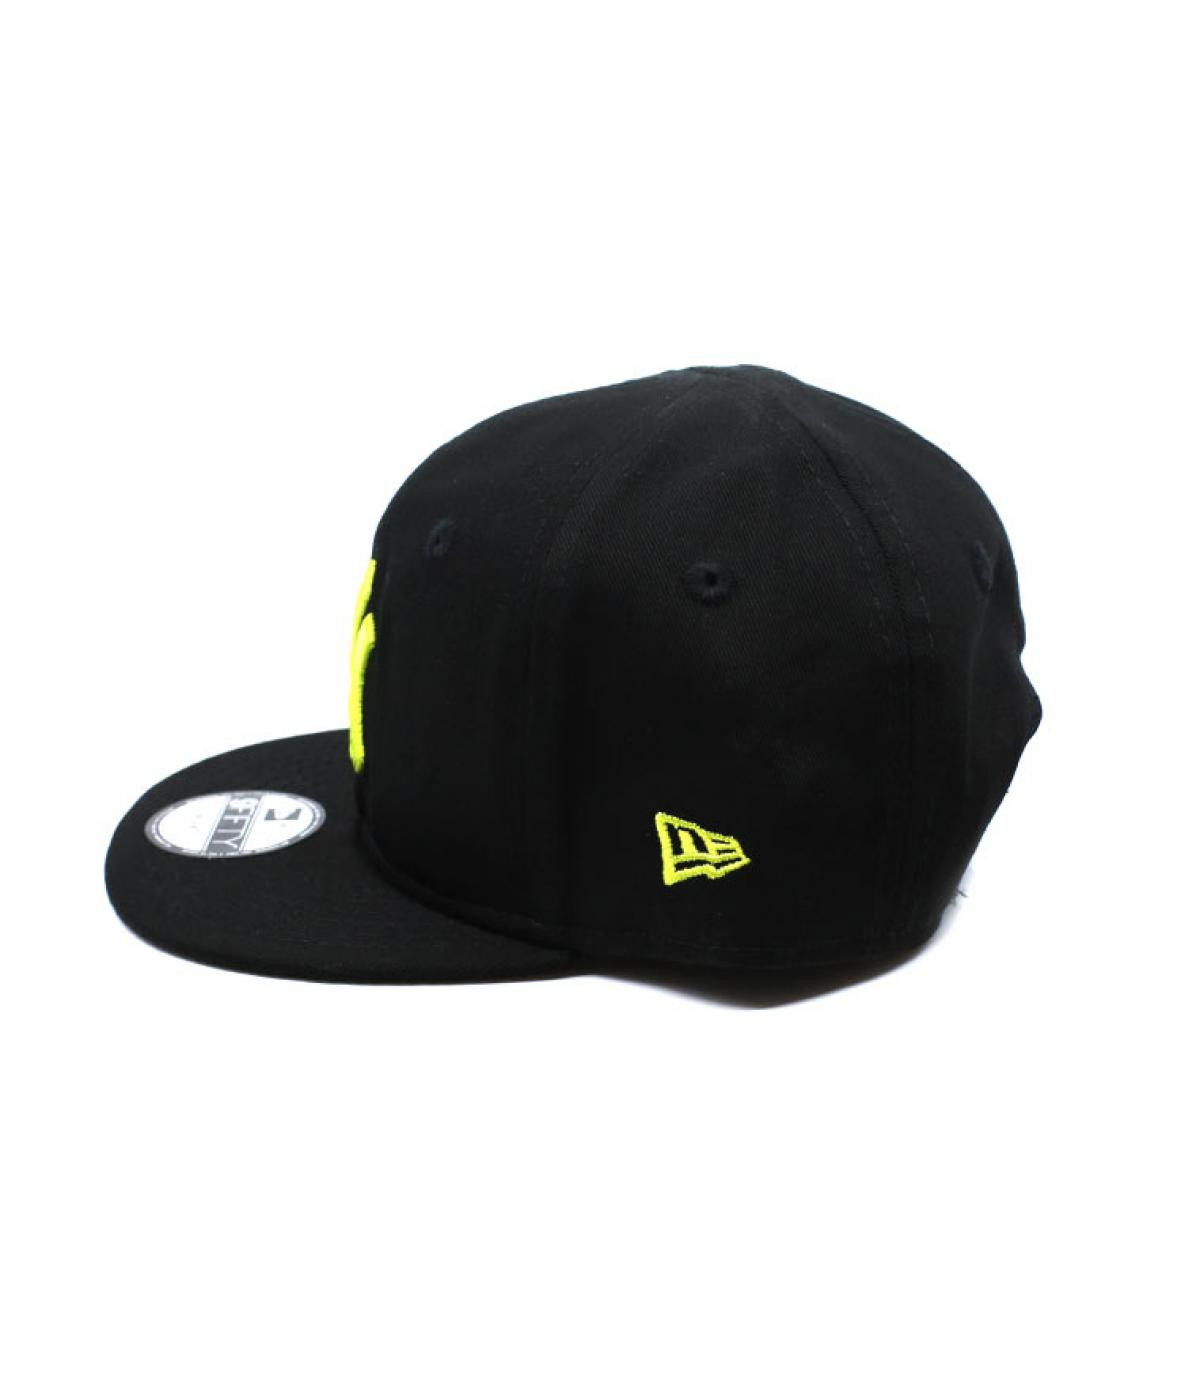 Détails Snapback Baby League Ess NY 9Fifty black cyber yellow - image 4